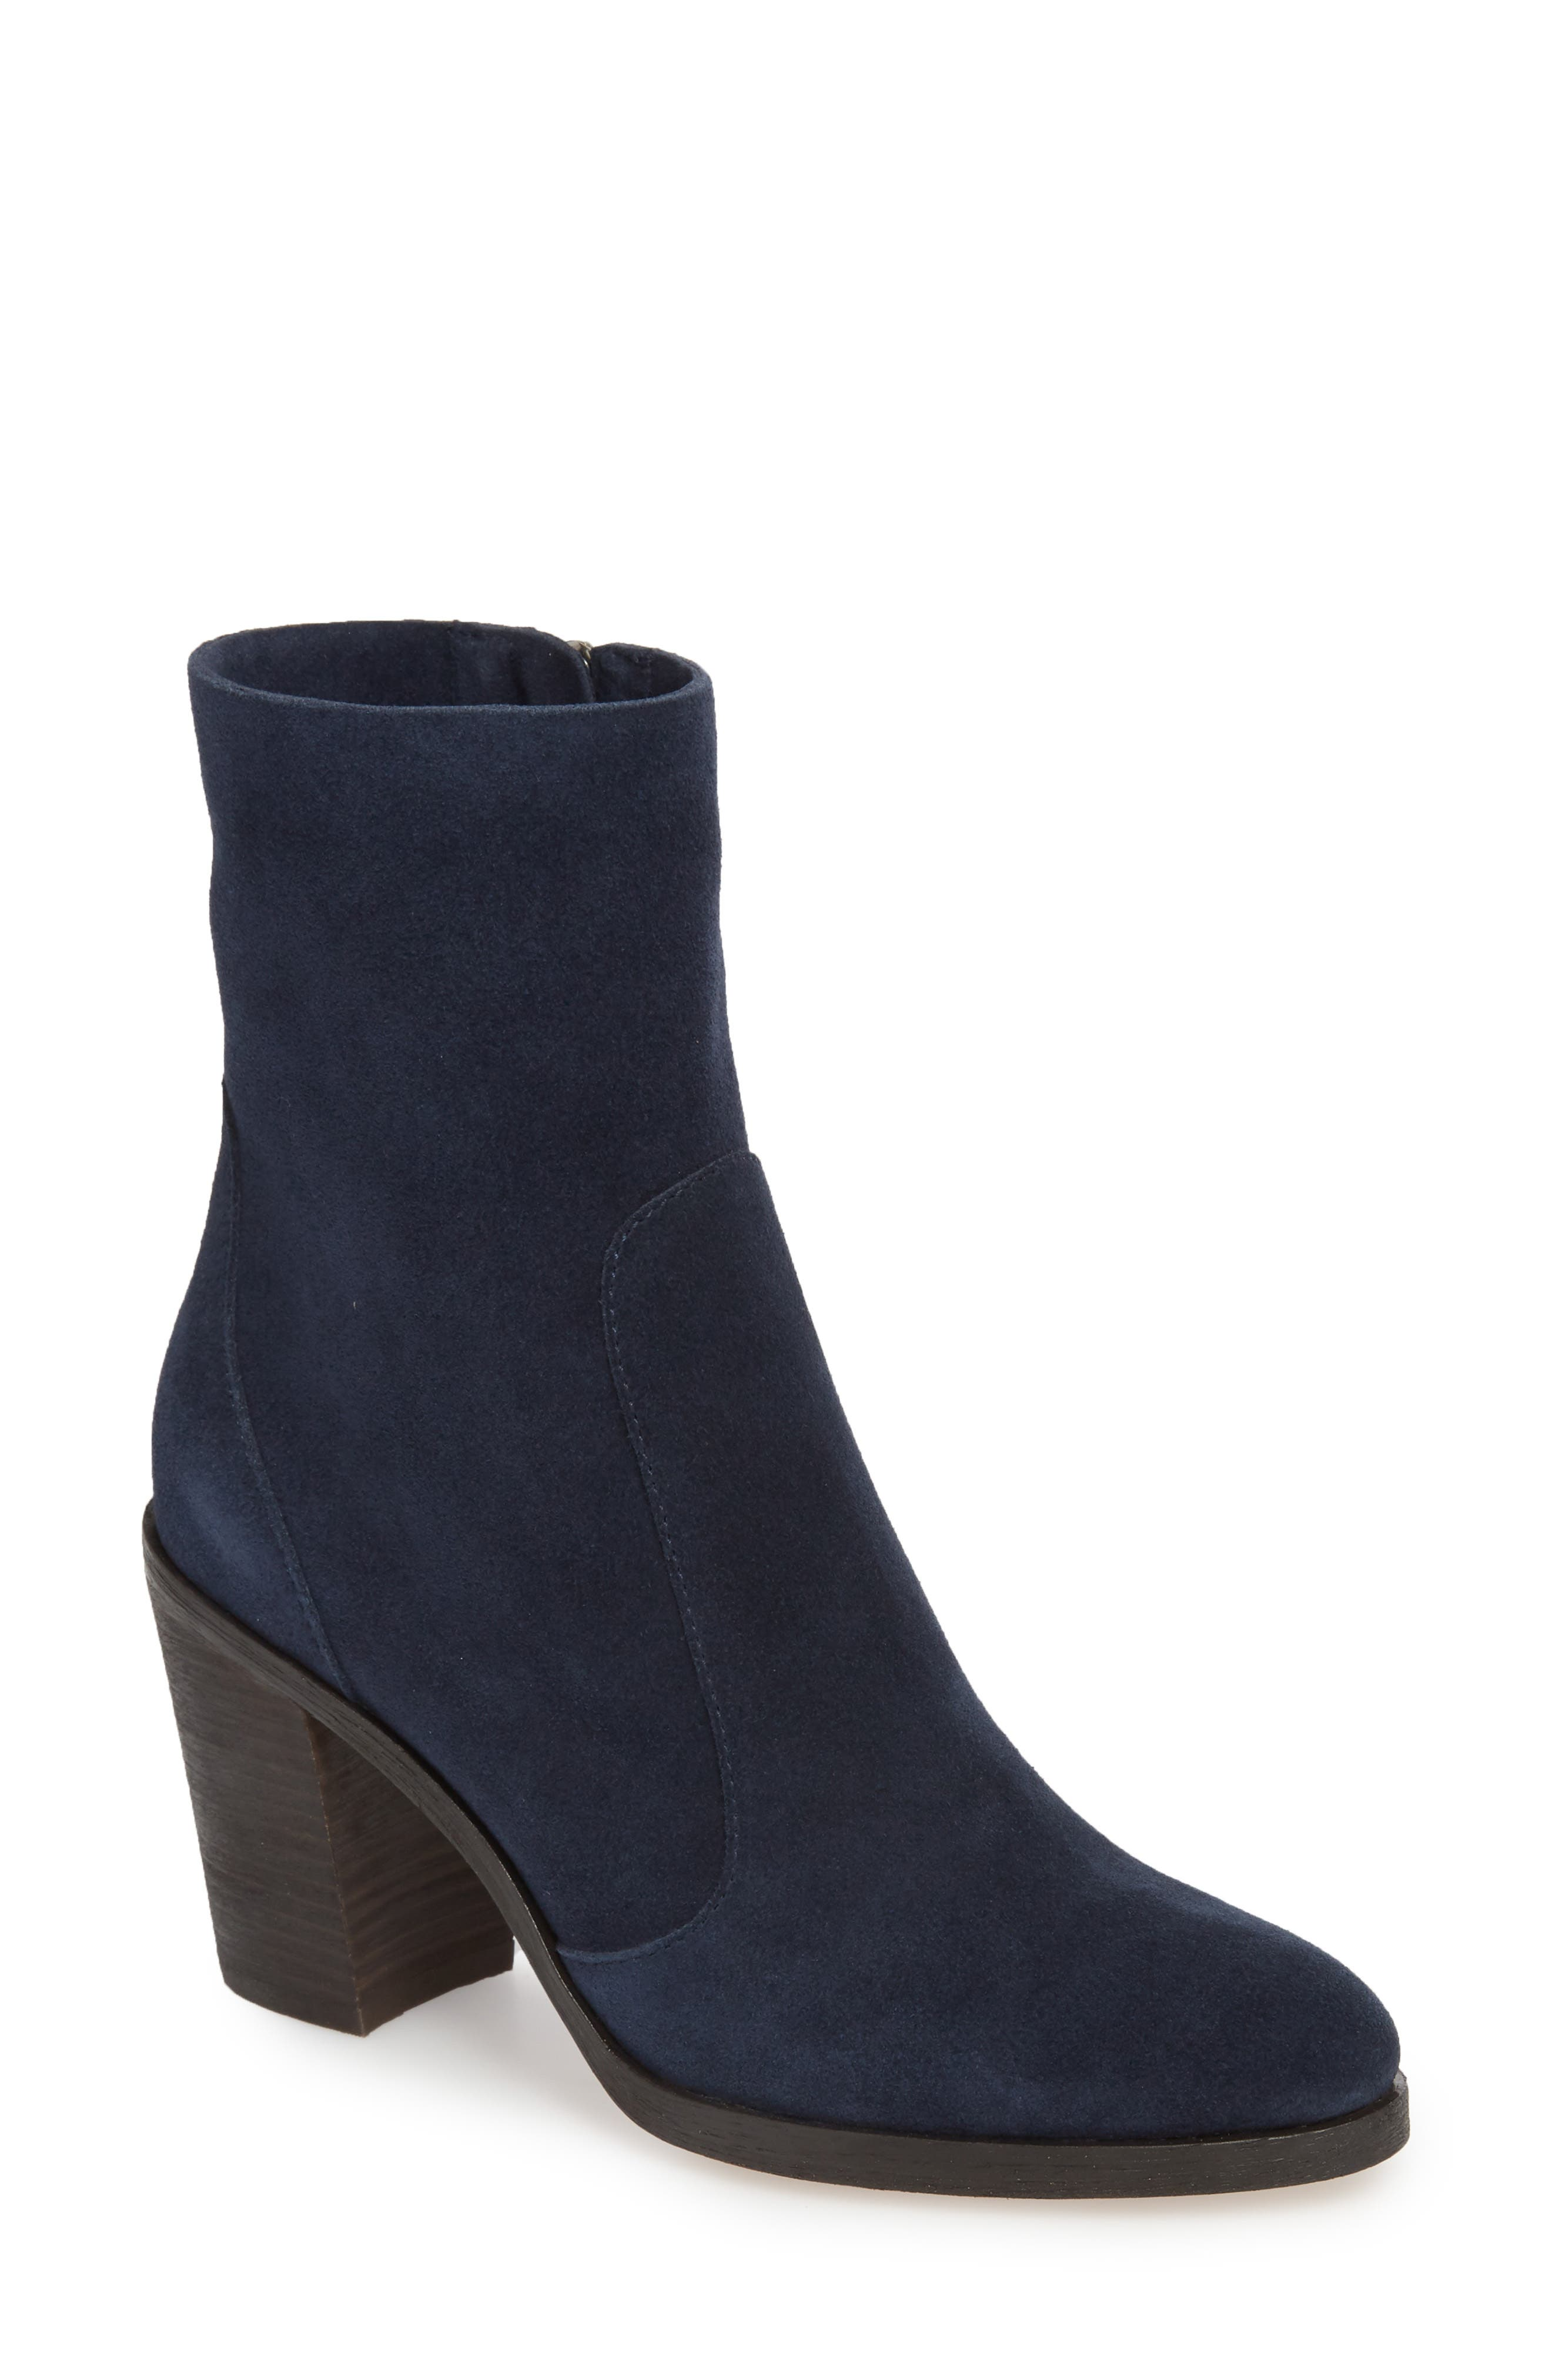 Roselyn II Almond Toe Bootie,                             Main thumbnail 1, color,                             Navy Suede